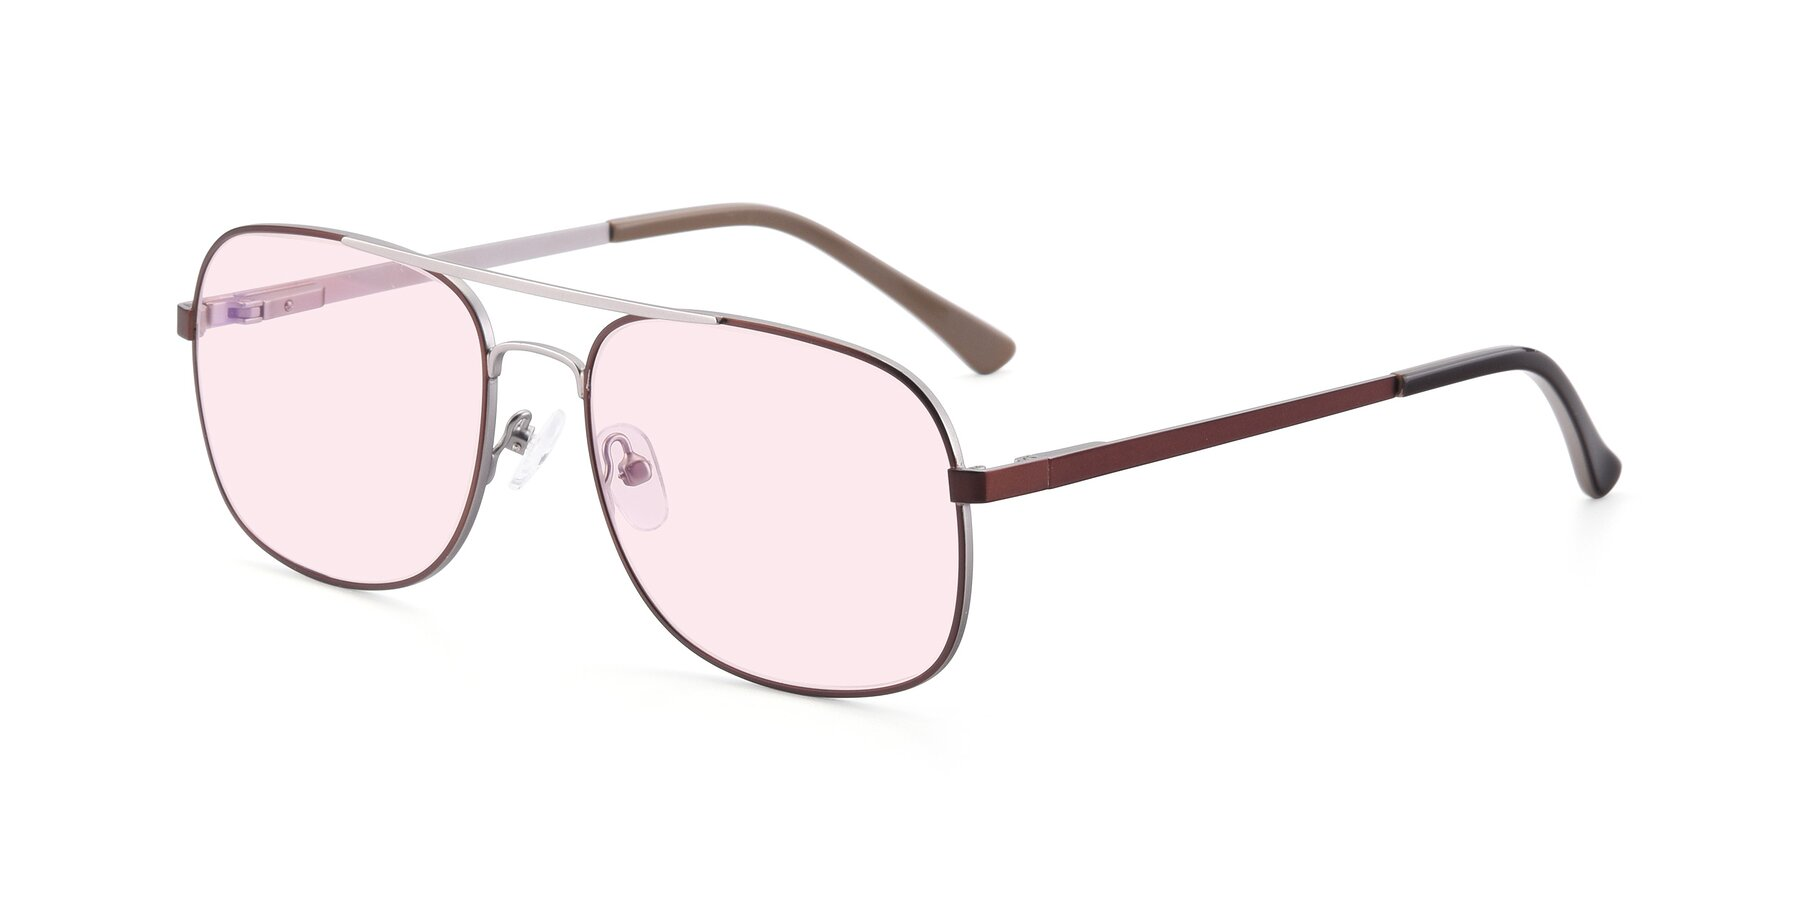 Angle of 9487 in Brown-Silver with Light Pink Tinted Lenses